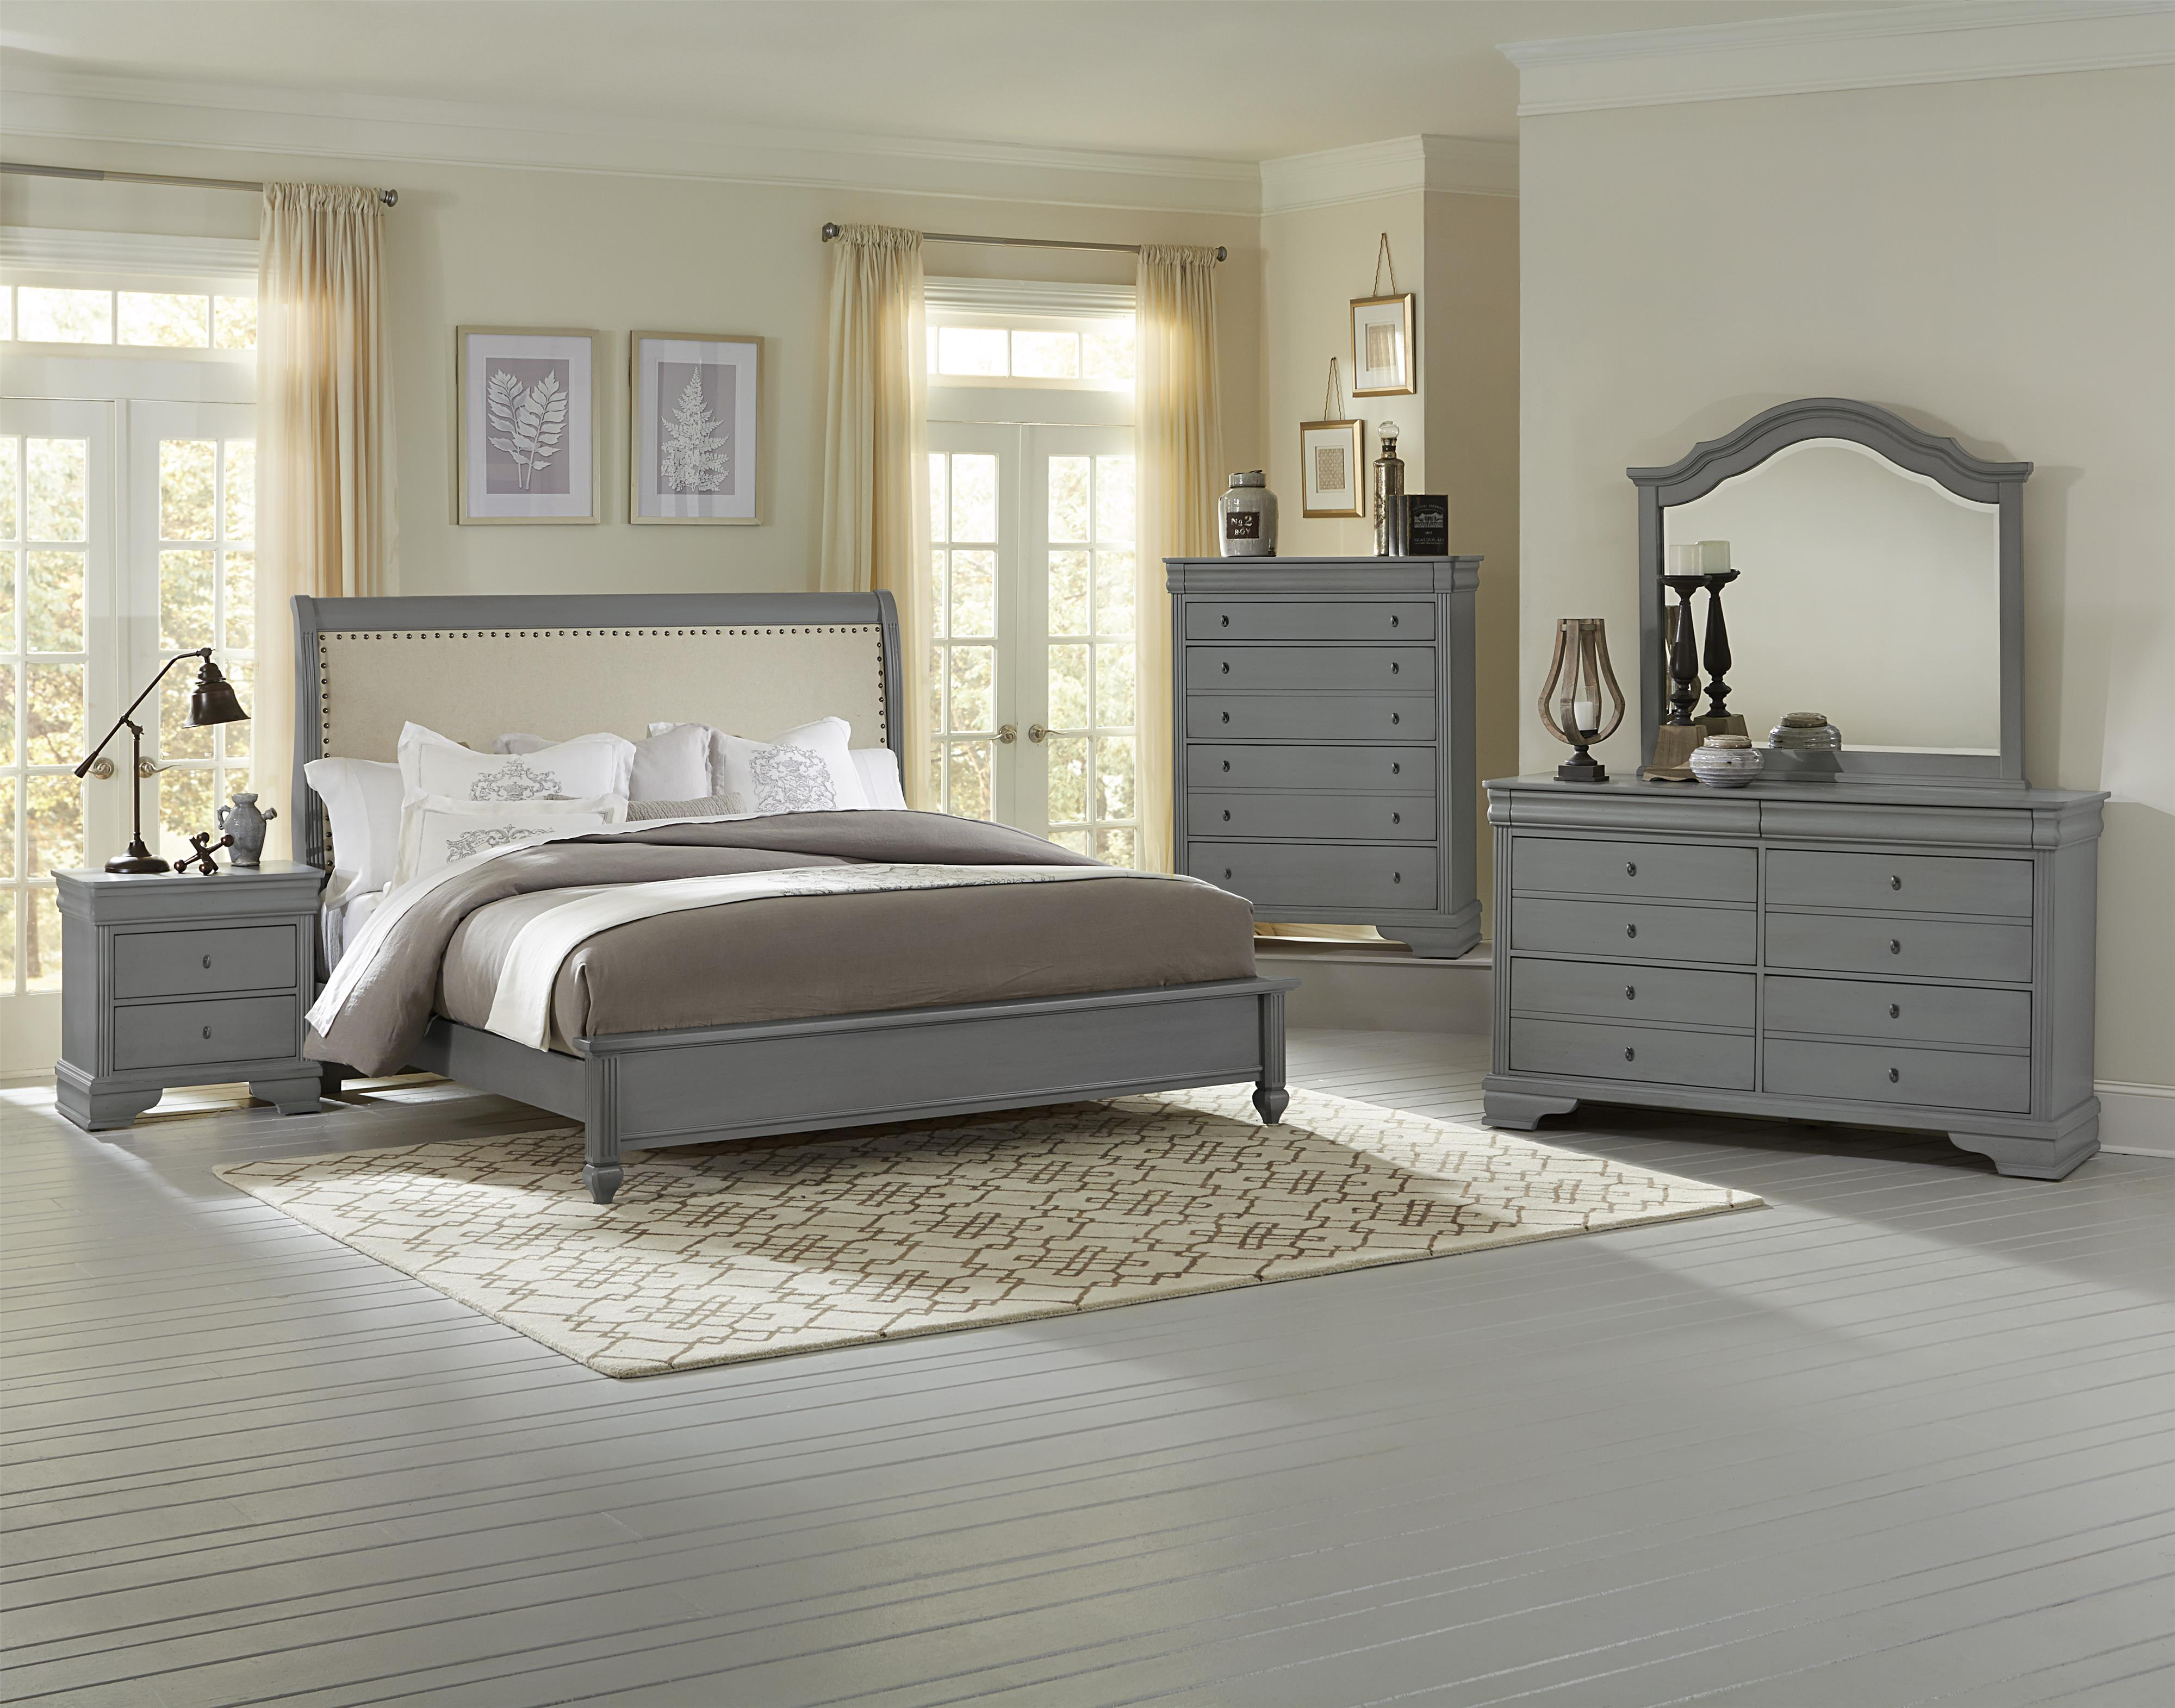 King Bedroom Suite Vaughan Bassett French Market King Bed W Upholstered Headboard